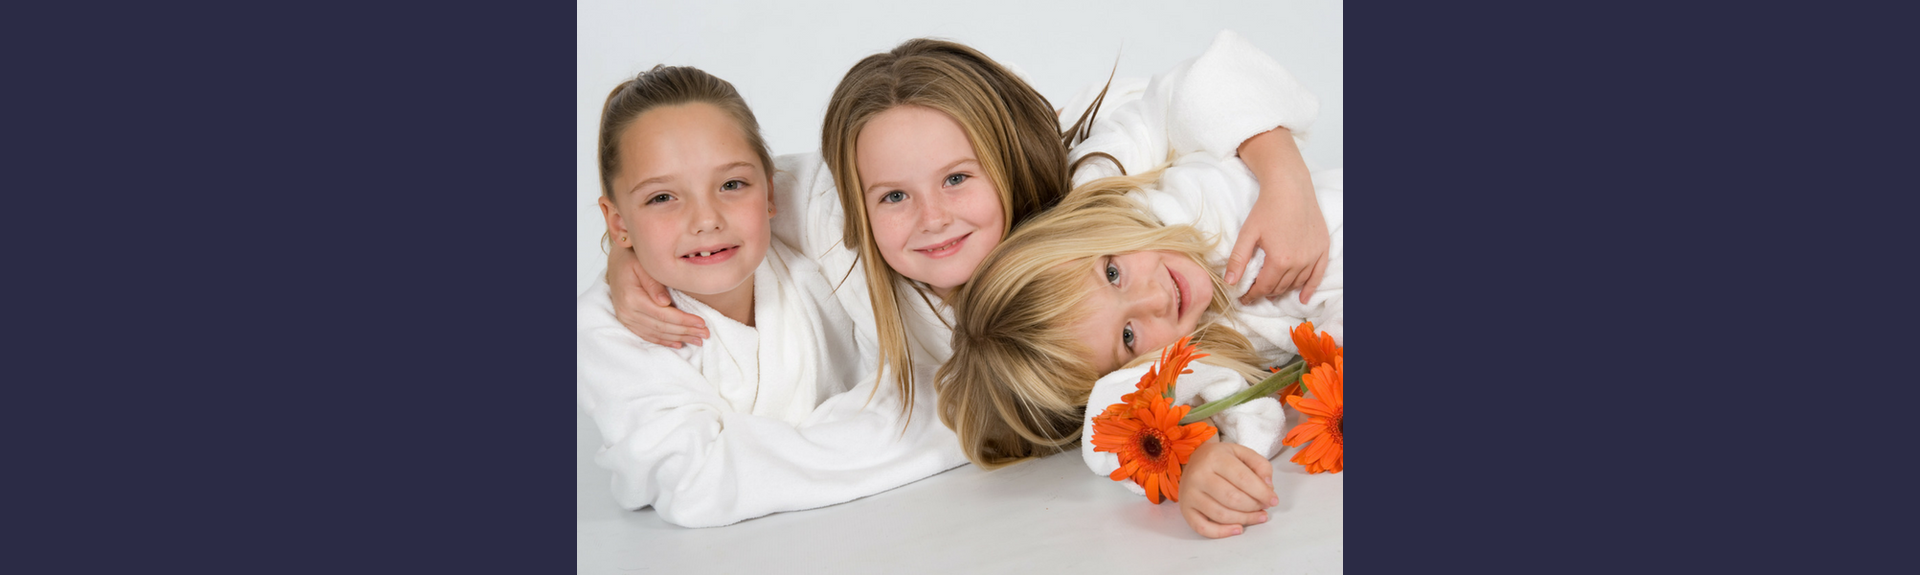 Mangwanani African Kids Spa - Wild Waters Coast Sun - Kids Pamper Party